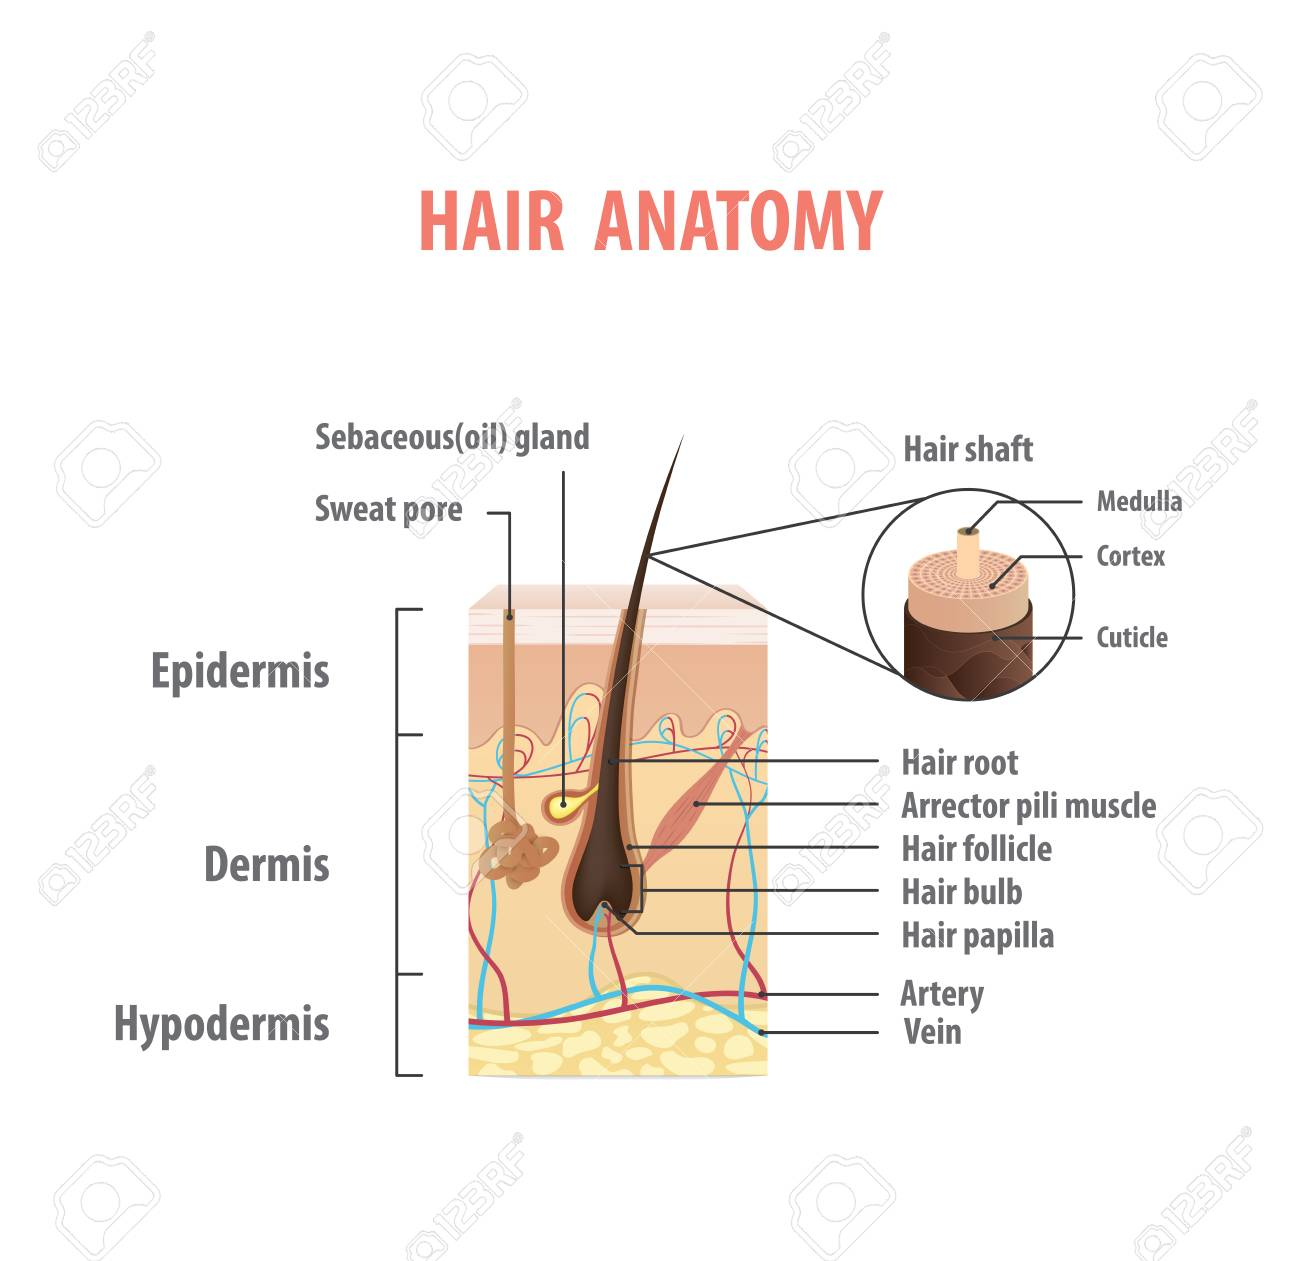 Fancy Human Hair Anatomy And Physiology Images - Human Anatomy ...